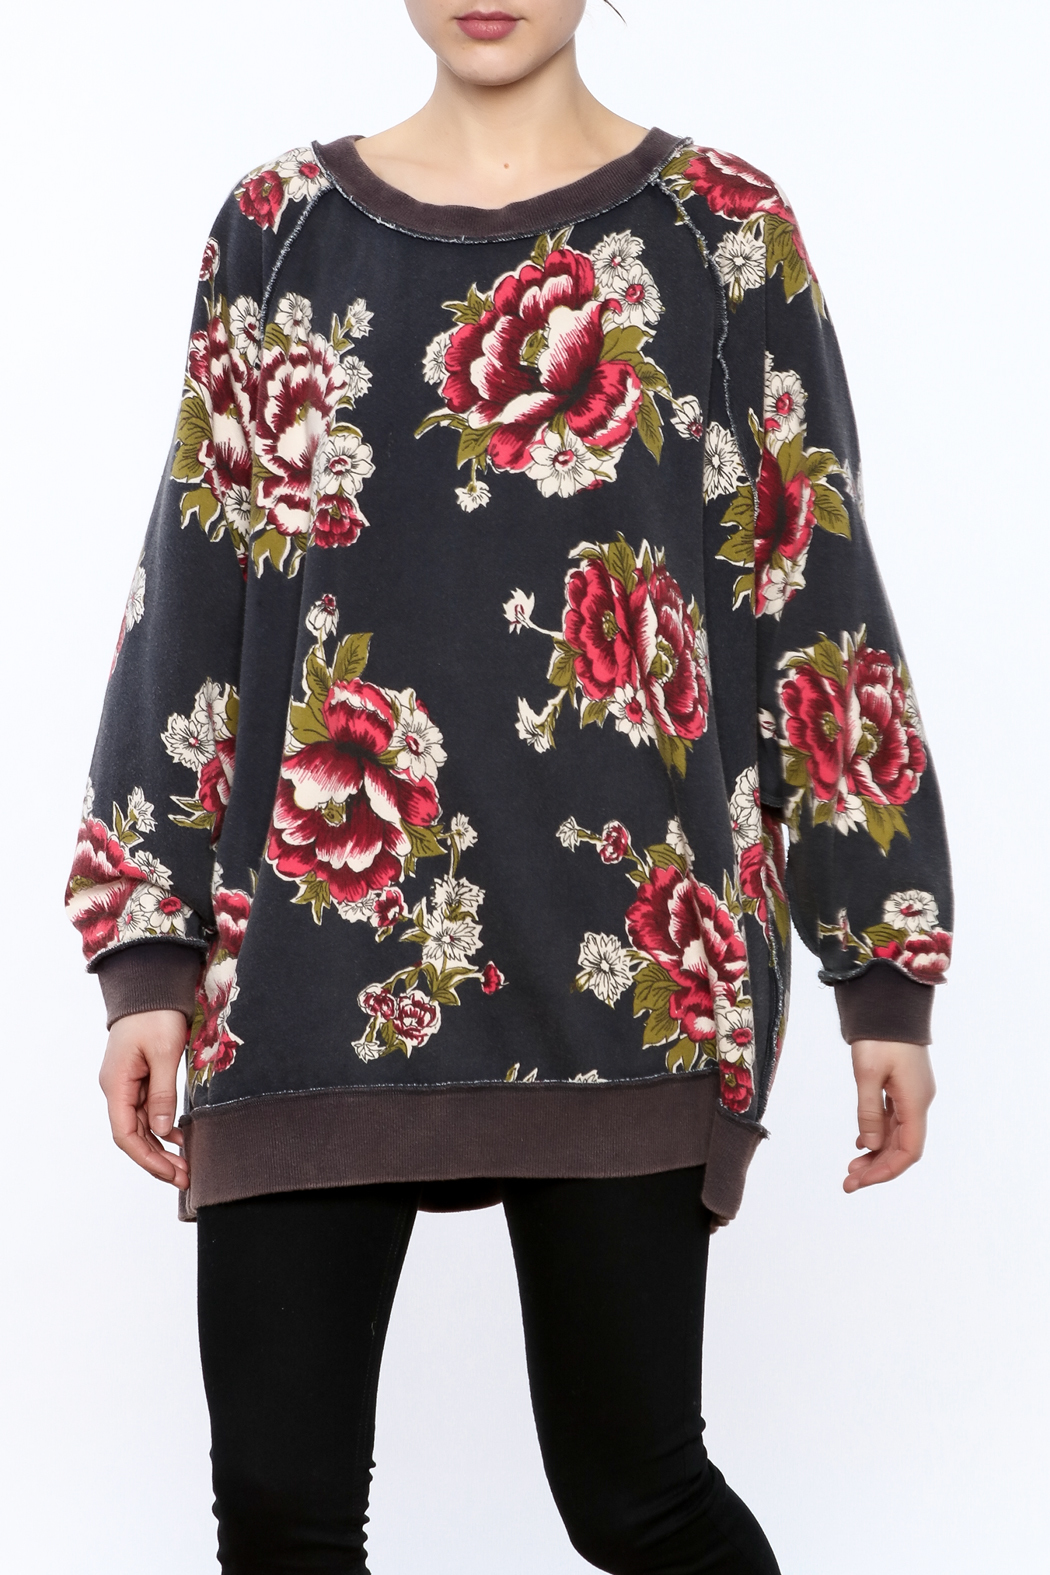 Shop our collection of contemporary floral shirts and upgrade your look. We love-love-love these floral shirts, and we're confident that you will too. Save up to 20% with shopbop promo codes. See more women's shirts, pants, and dresses from Kate Spade New York, Monreal London, Luli Fama, Prism, Chaser, and By Malene Birger.